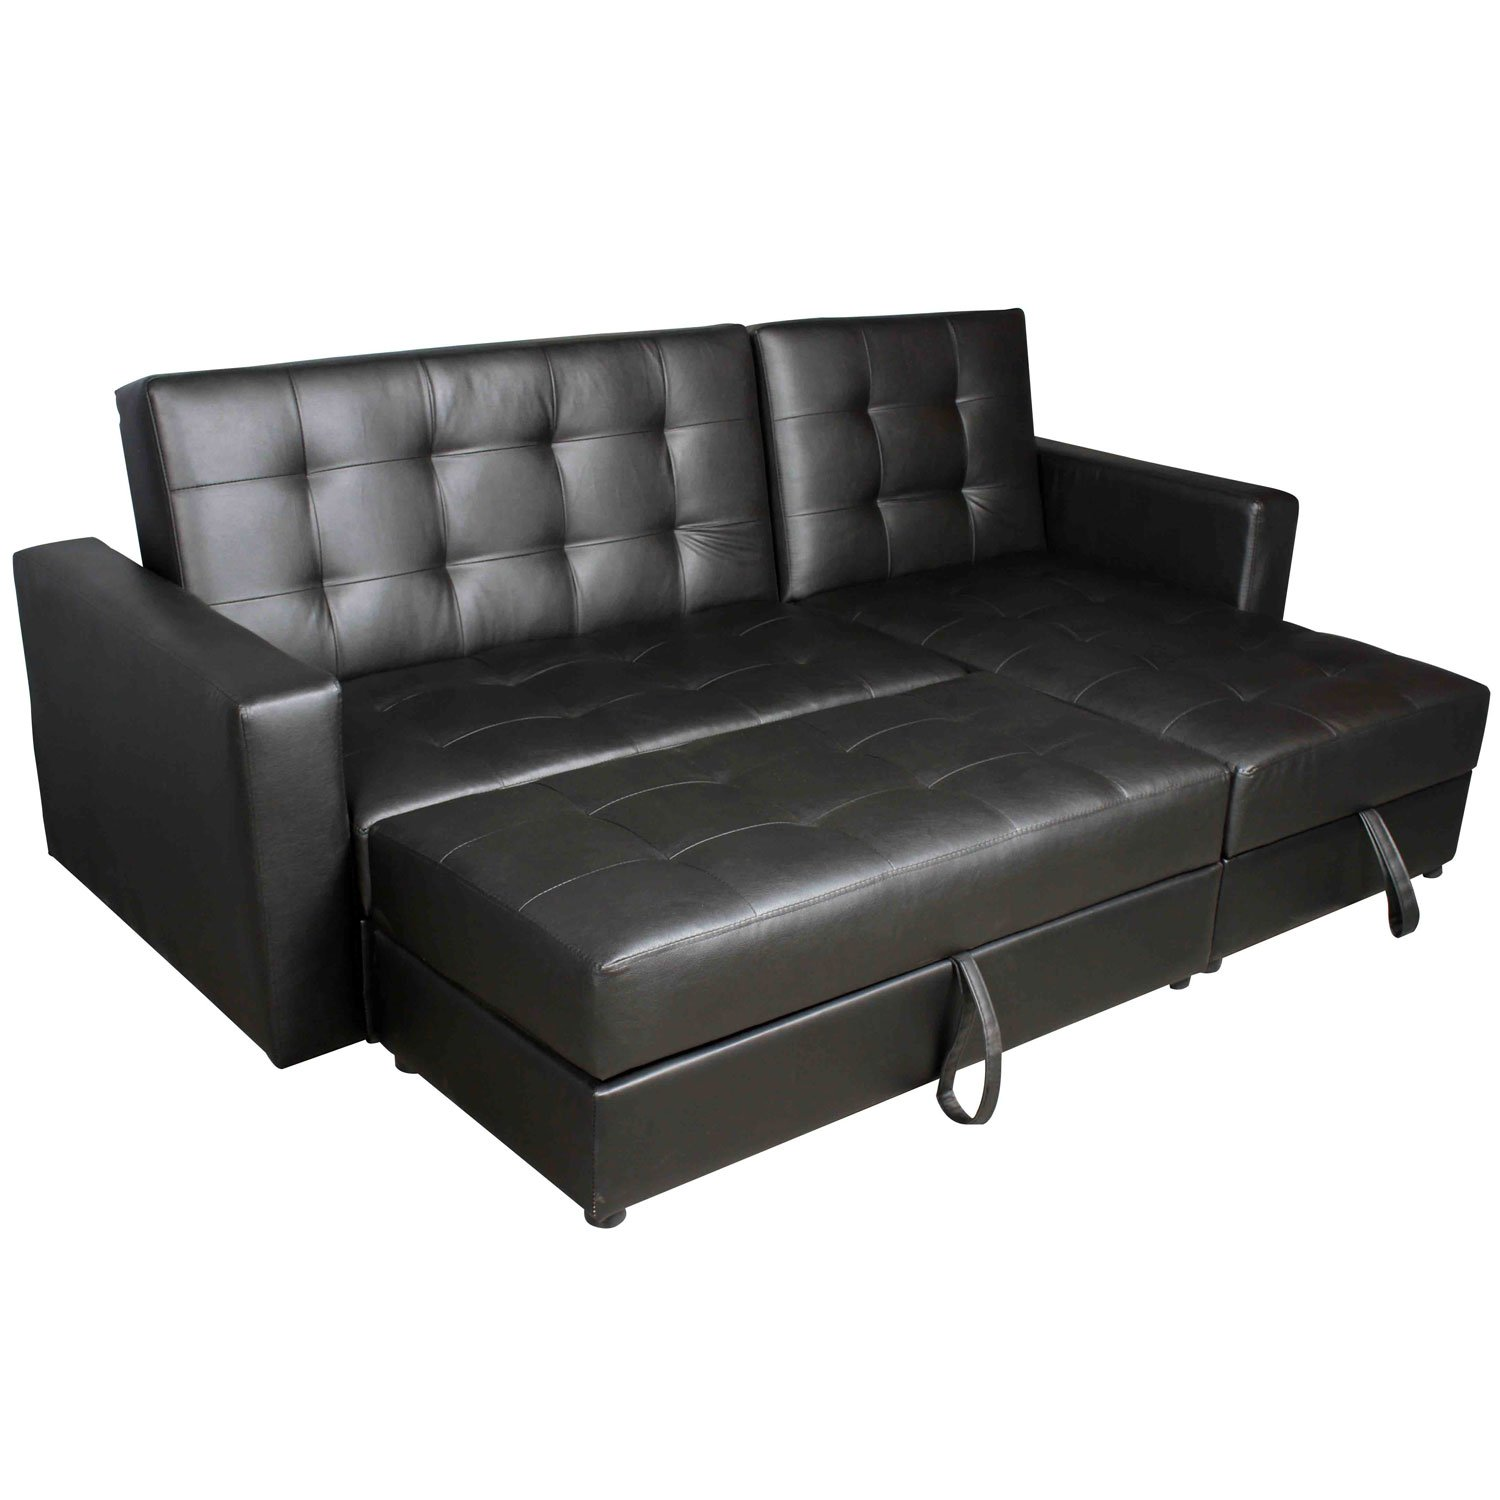 Hom Deluxe Faux Leather Corner Sofa Bed Storage Sofabed Couch